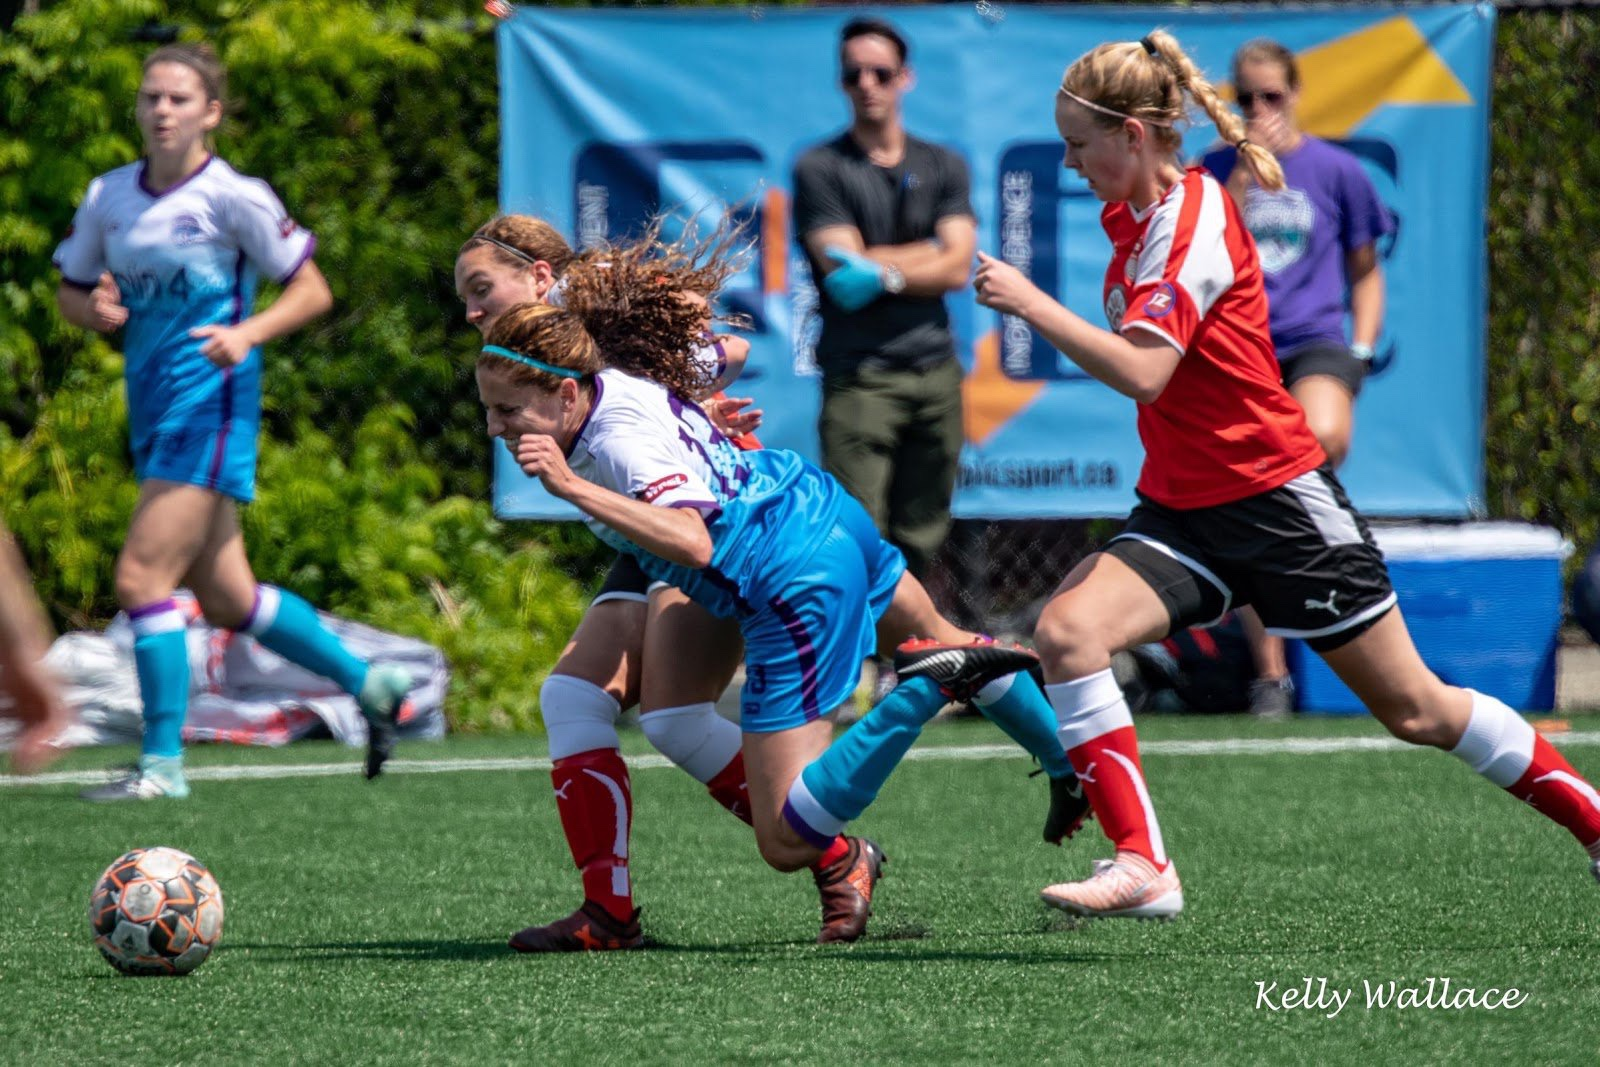 Mariel, and Vancouver Island FC, finished 2nd in their inaugural year as members of WPSL. (All Photos by Kelly Wallace, via Mariel Solsberg)